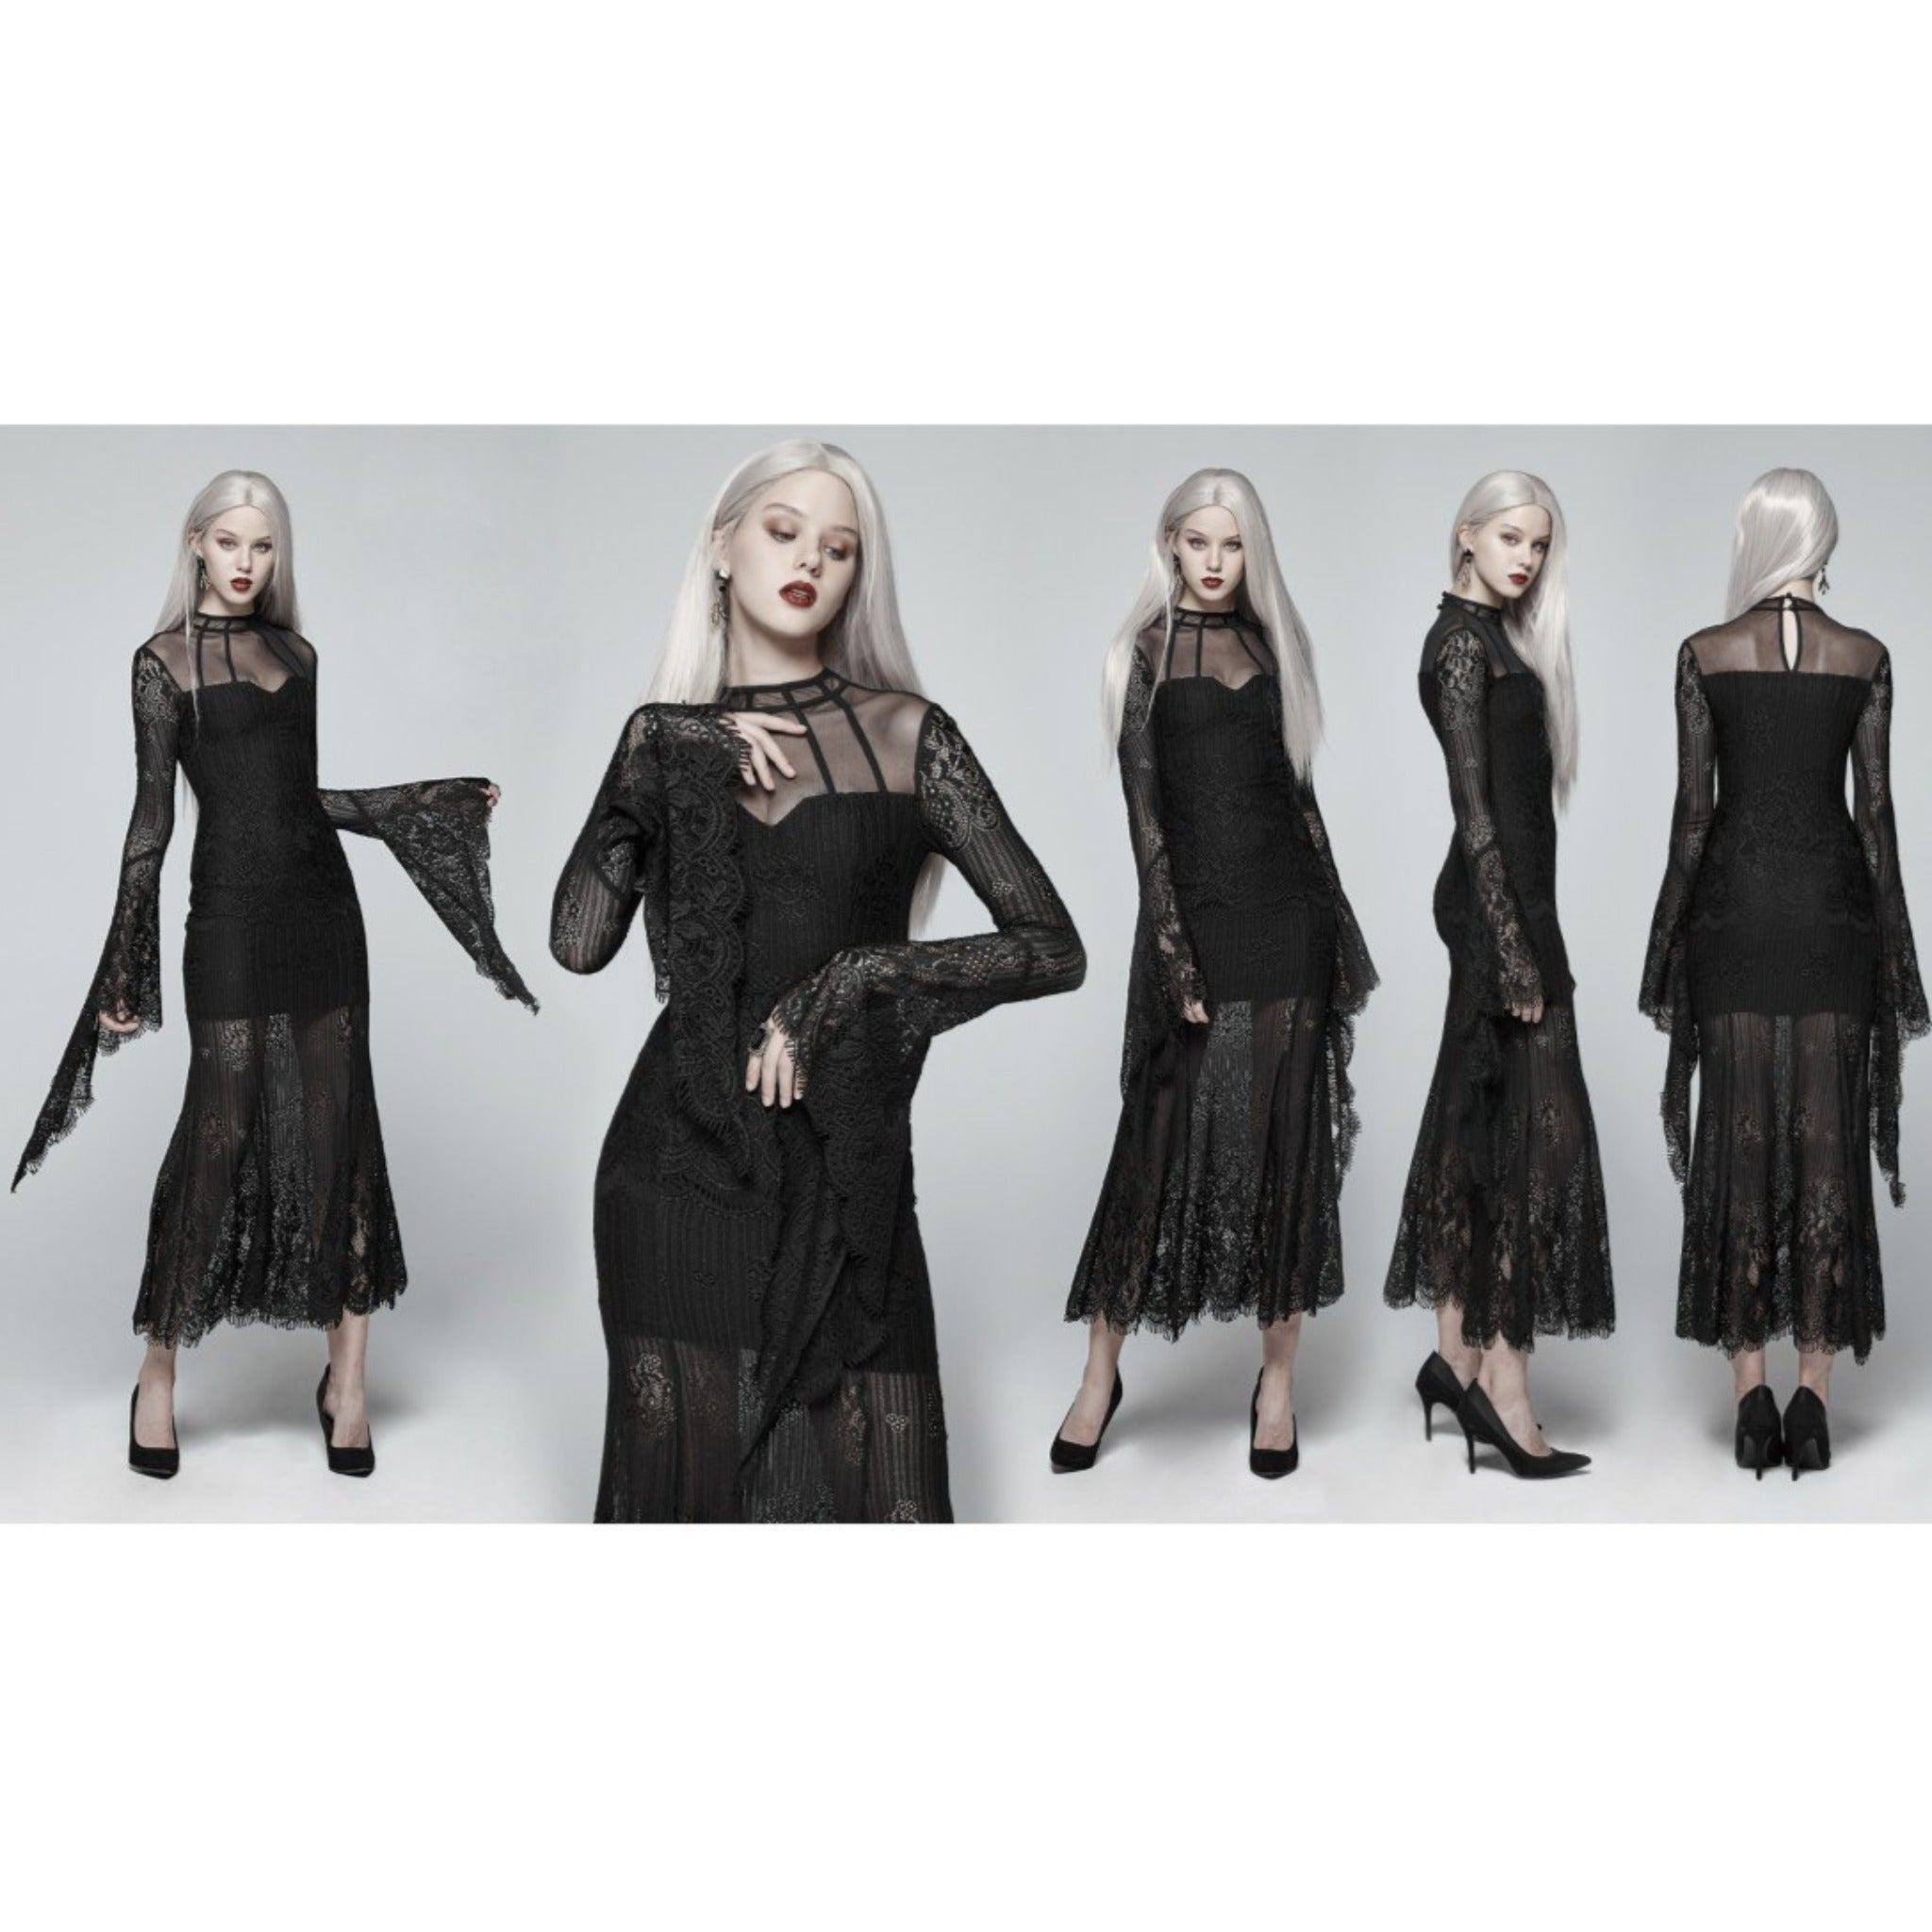 The Dignified Lania Dress - Goth Mall